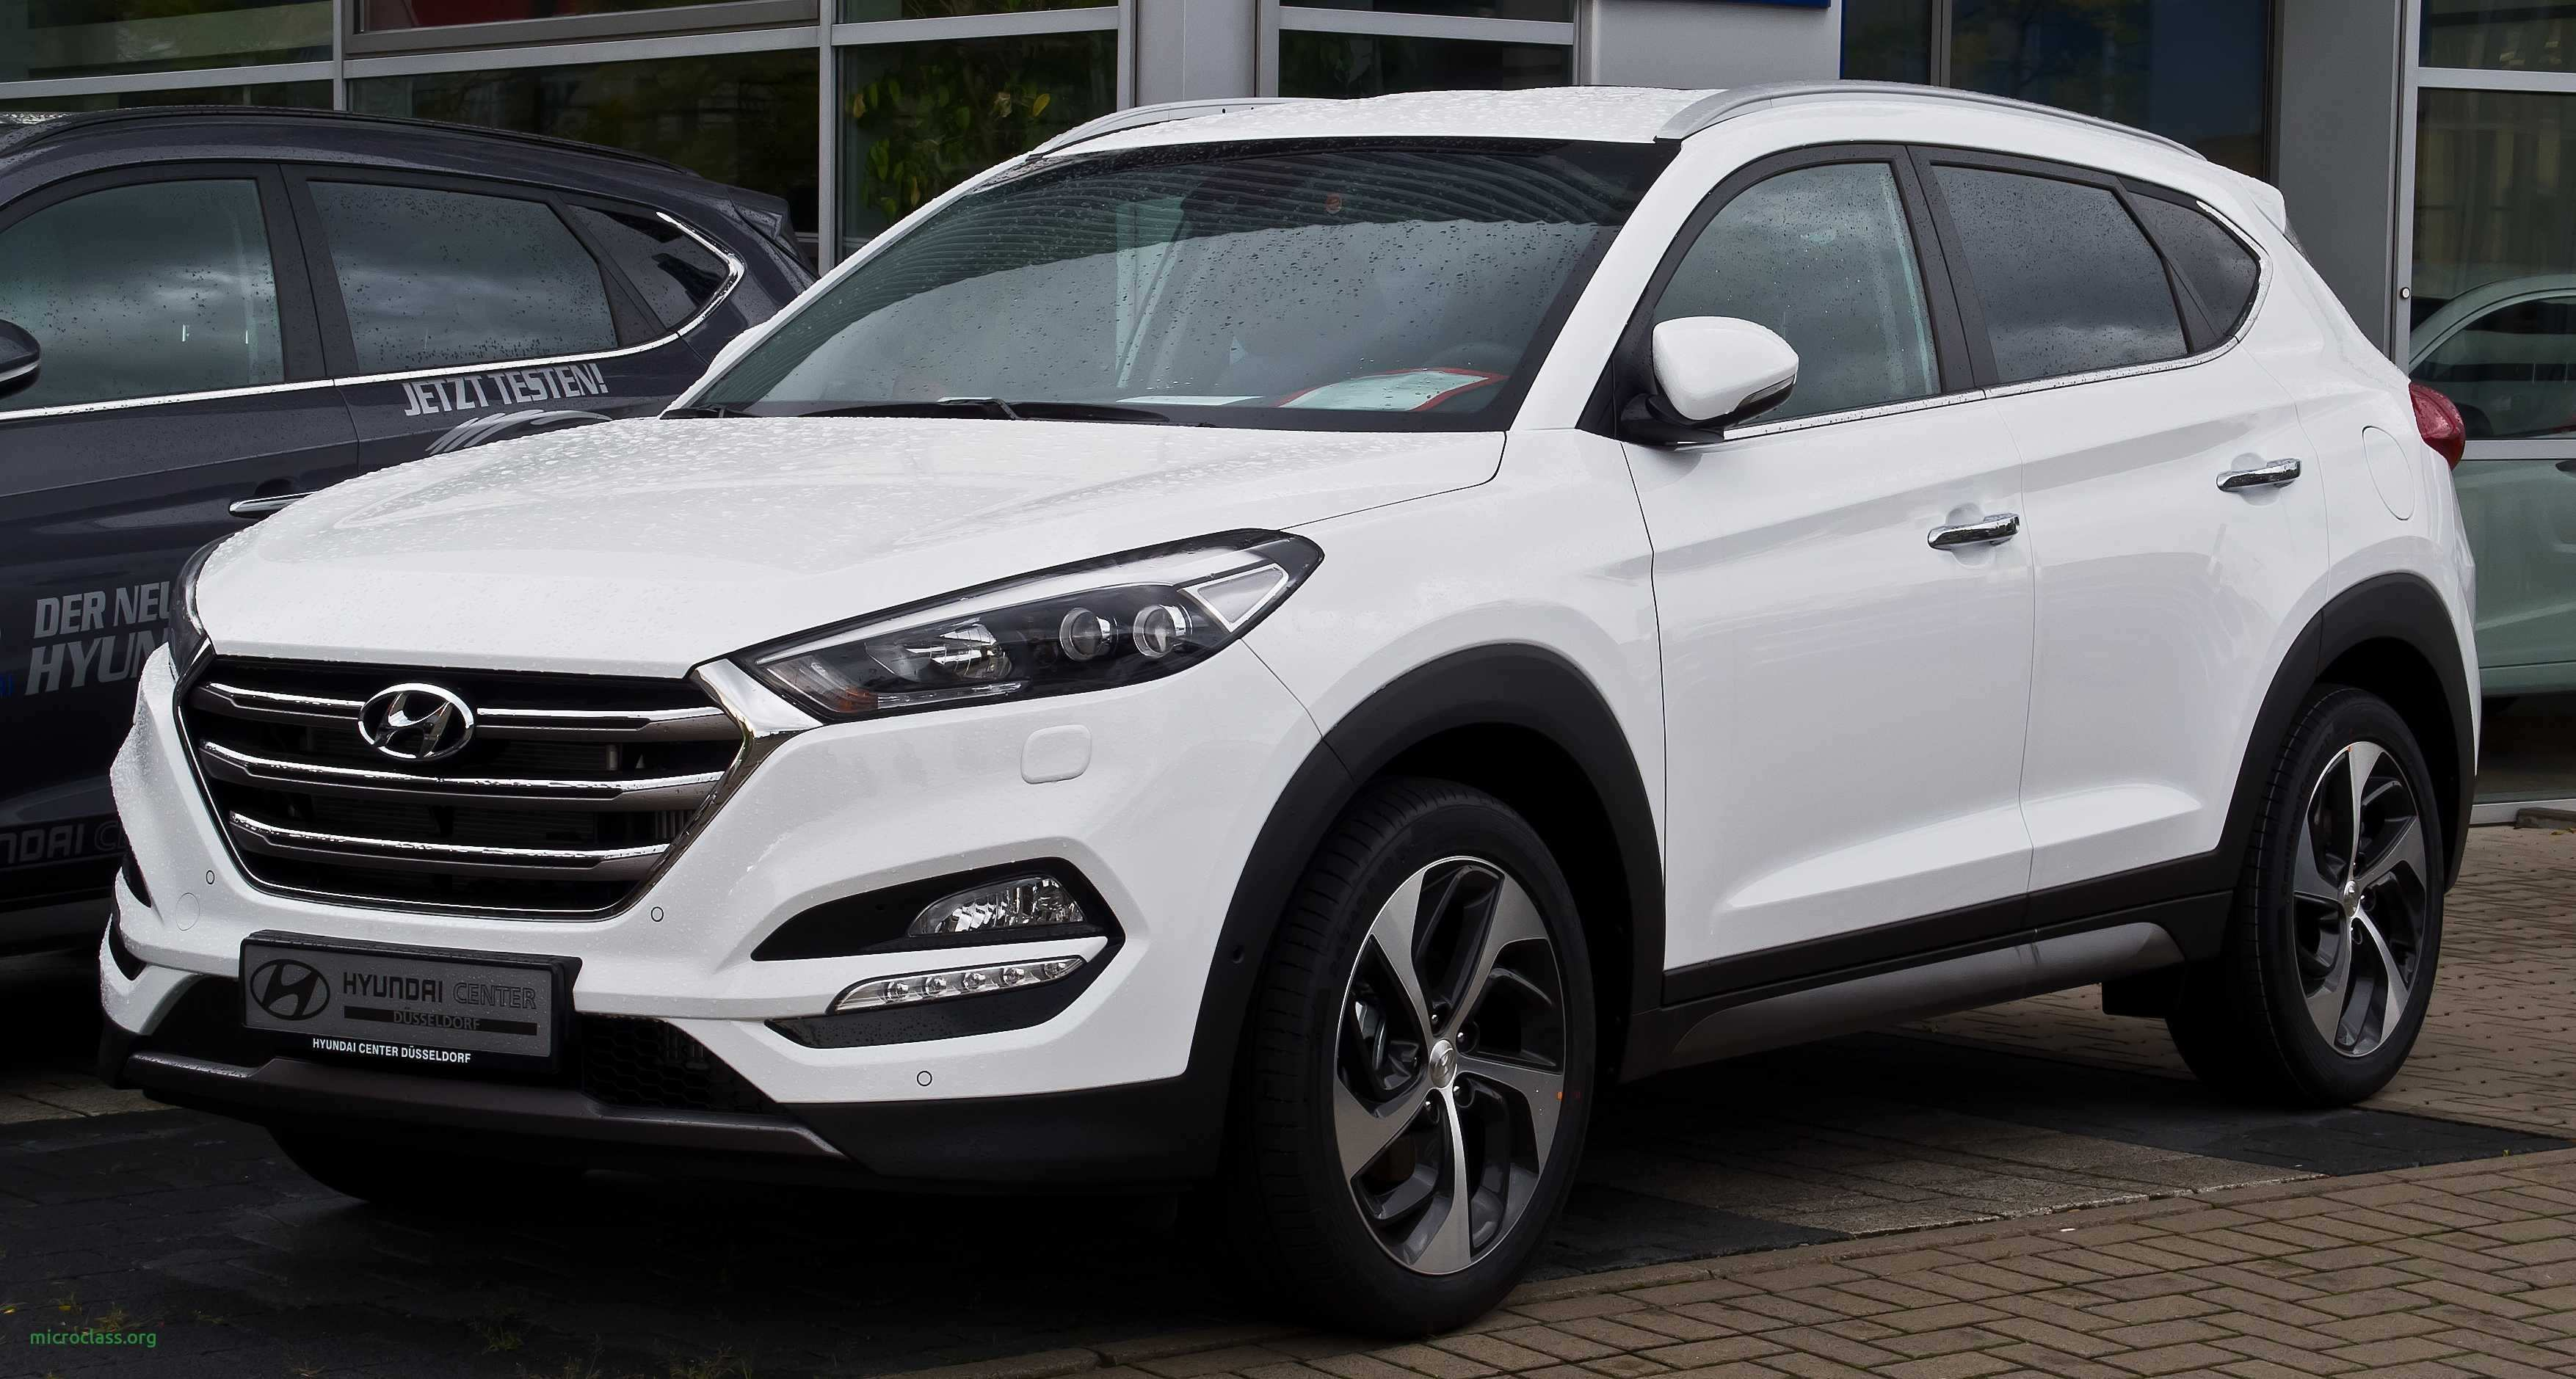 29 All New When Will The 2020 Hyundai Tucson Be Released Performance And New Engine